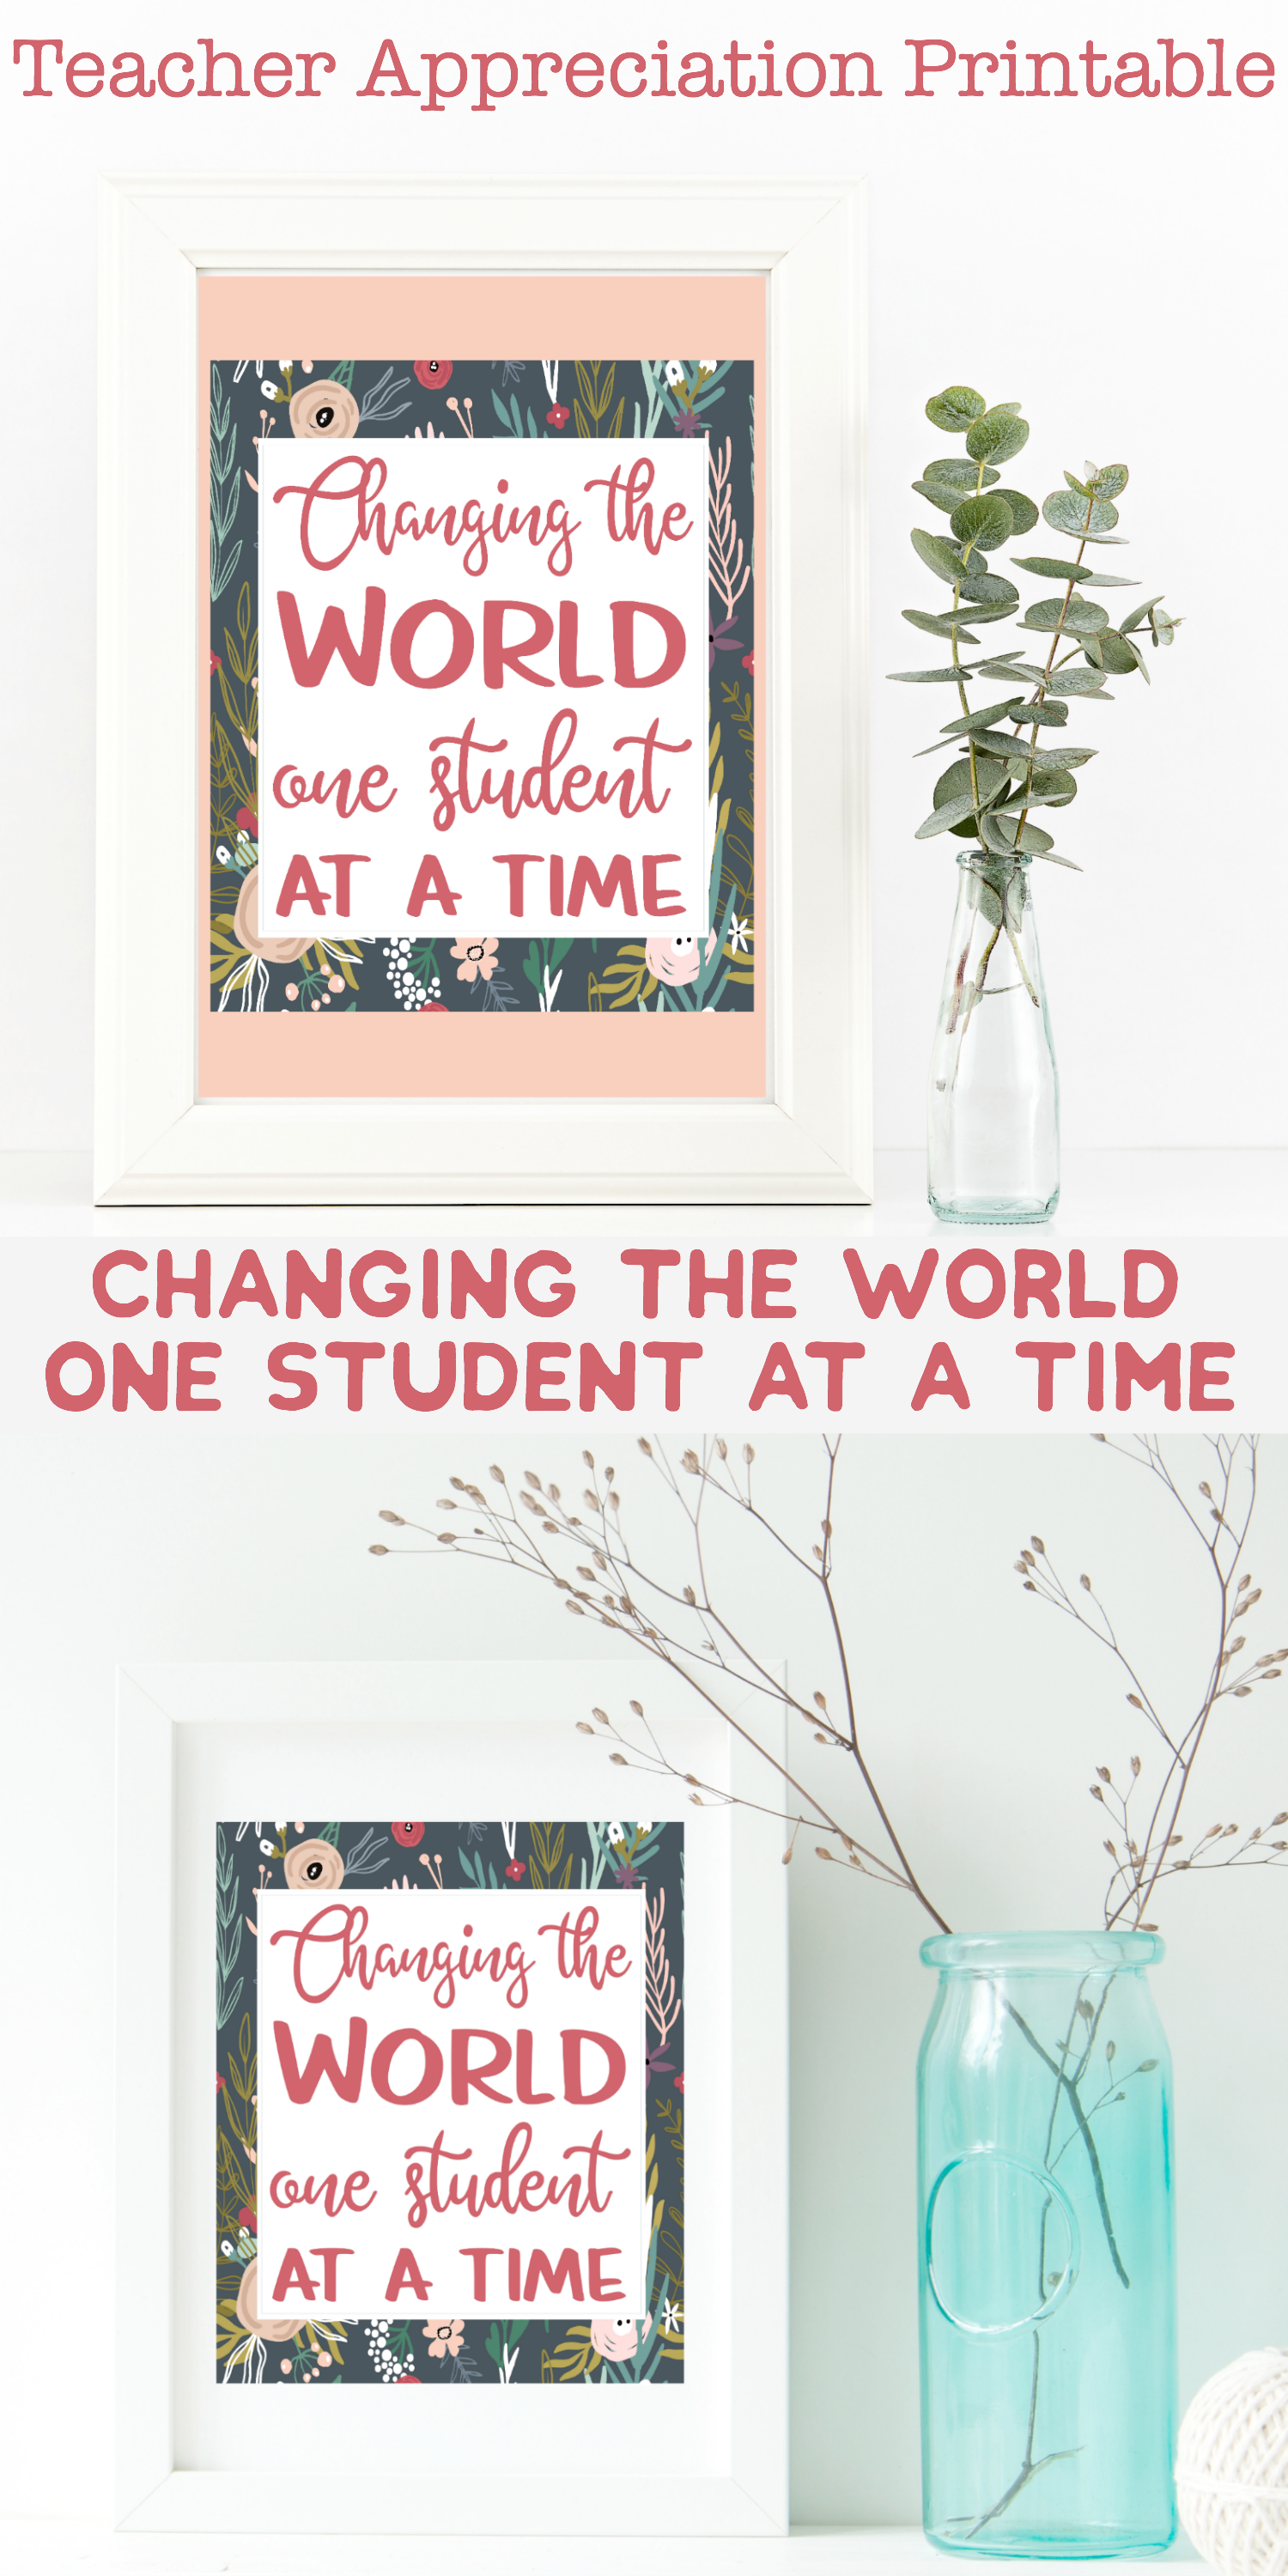 Know a teacher? Want a way to show your appreciation? This Changing the World One Student at a Time printable makes the perfect gift for teacher appreciation.